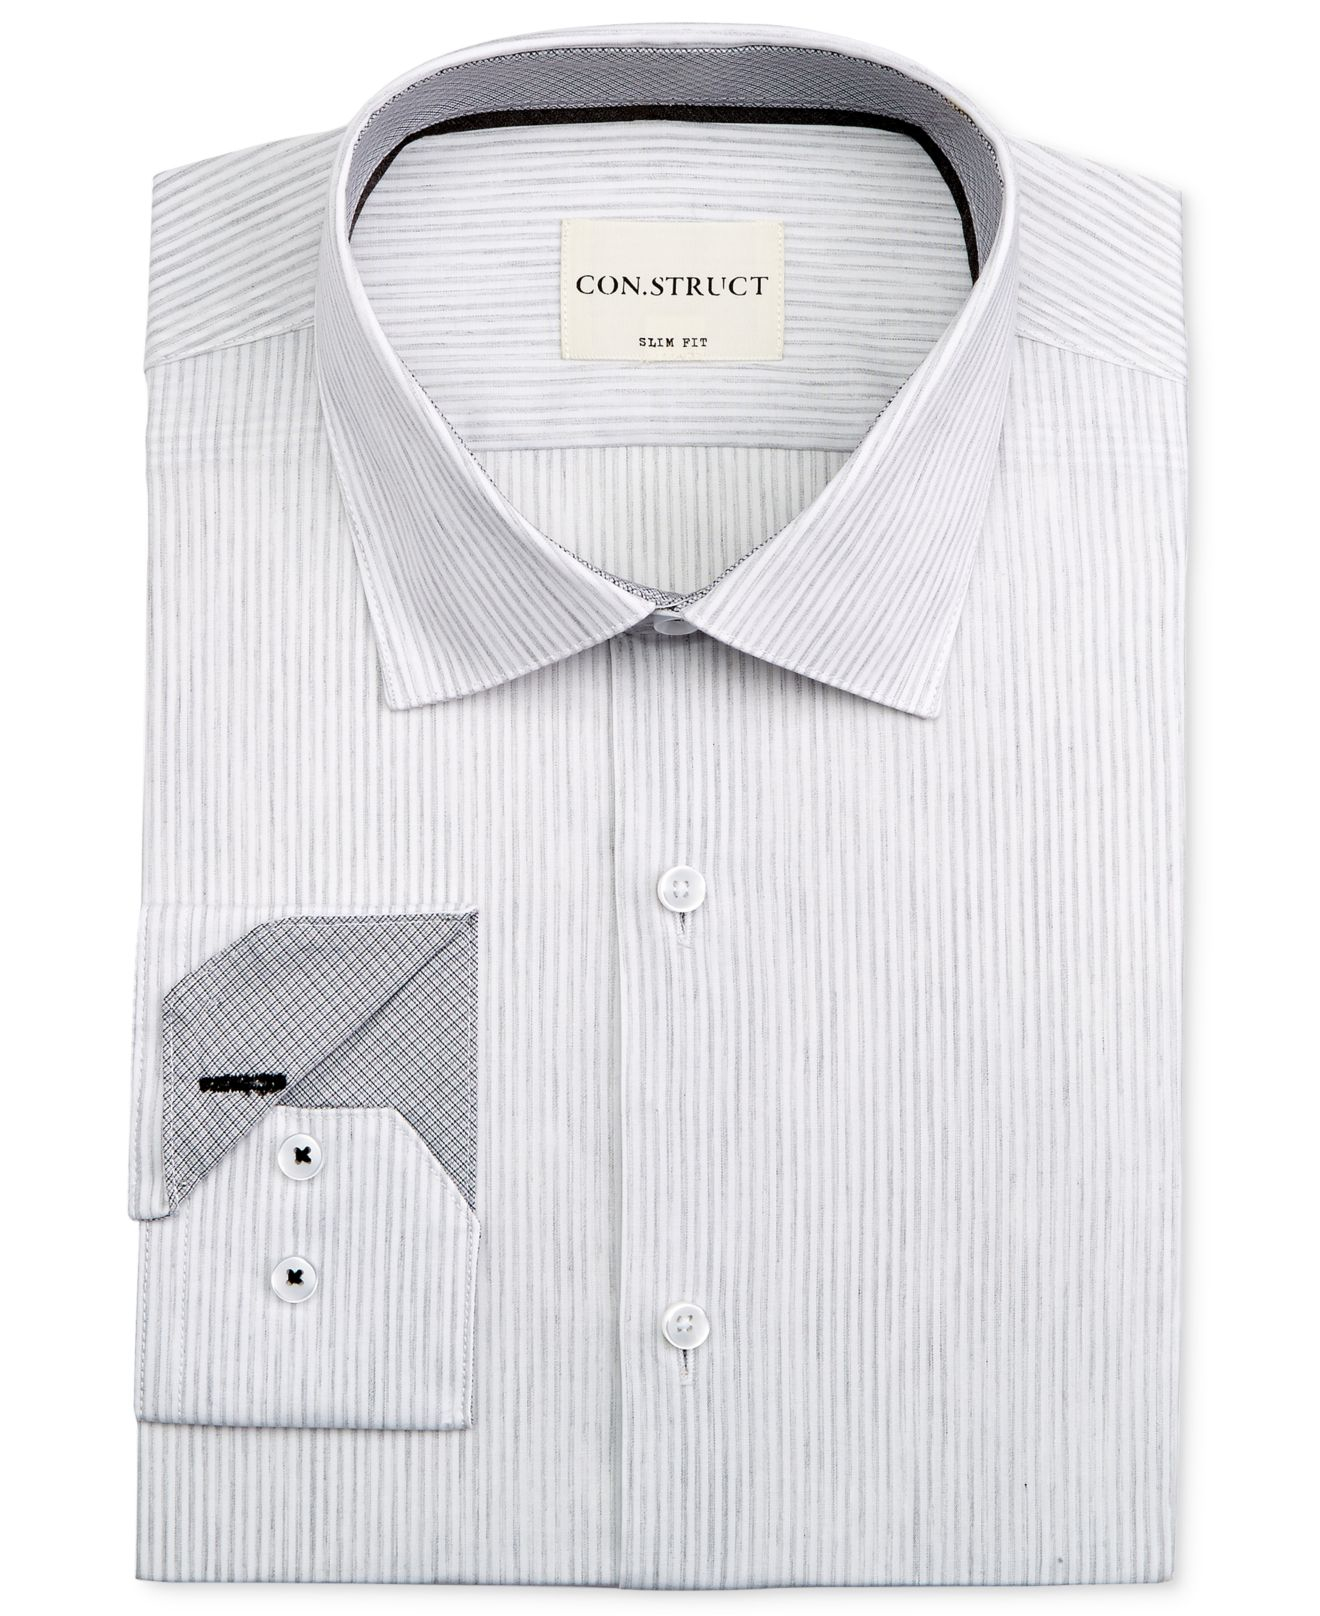 12a7a4253a Con.struct Men's Slim-fit Light Gray Striped Dress Shirt in Gray for ...